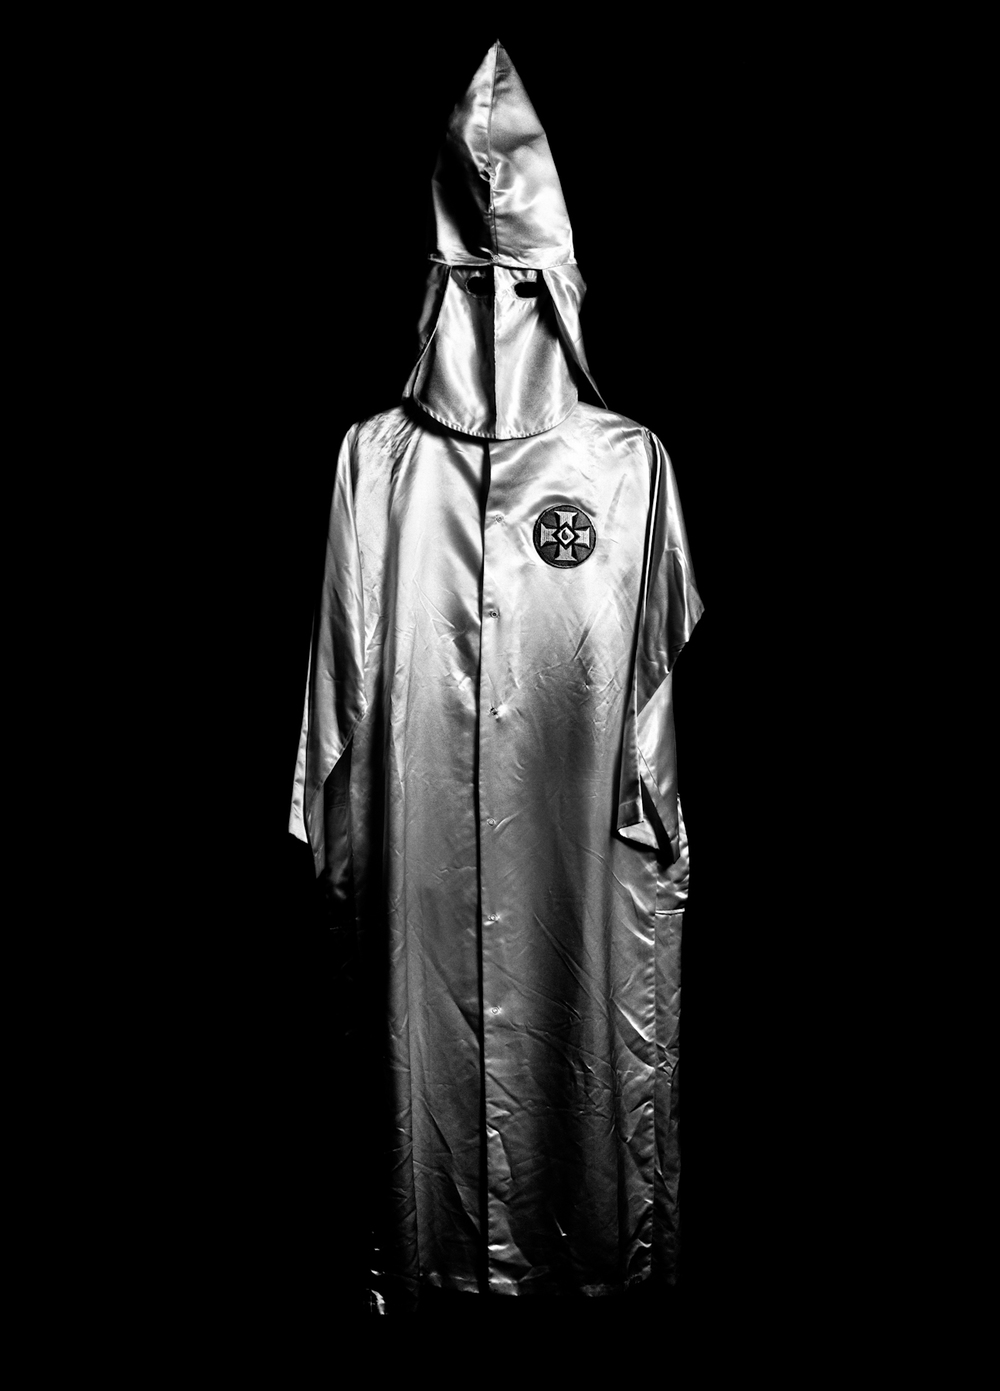 Ku Klux Klan costume, Birmingham Civil Rights Institute, 2009.